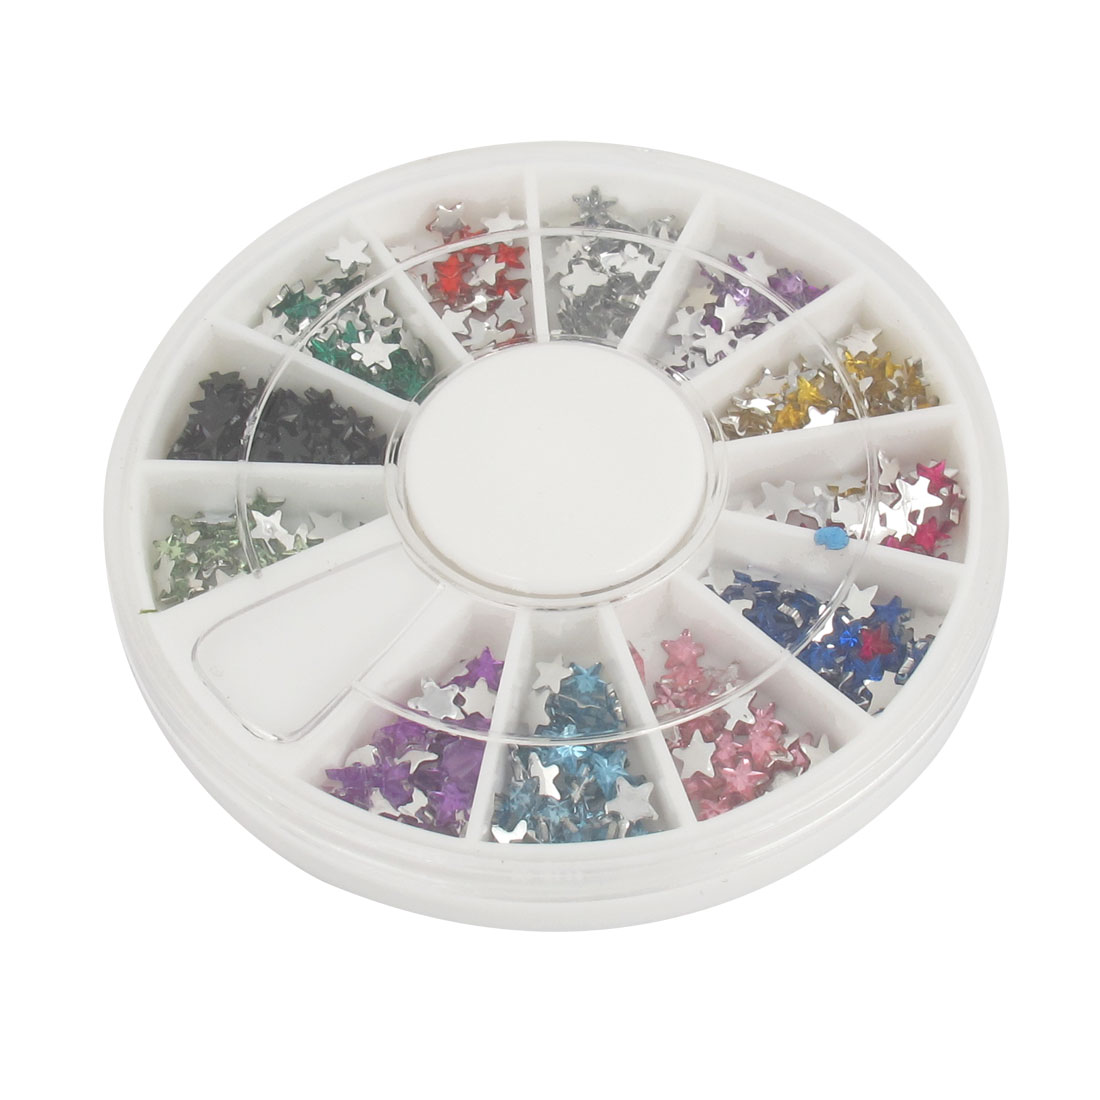 A Wheel Fingers Decor Assorted Color Stars Style Nail Art Rhinestone